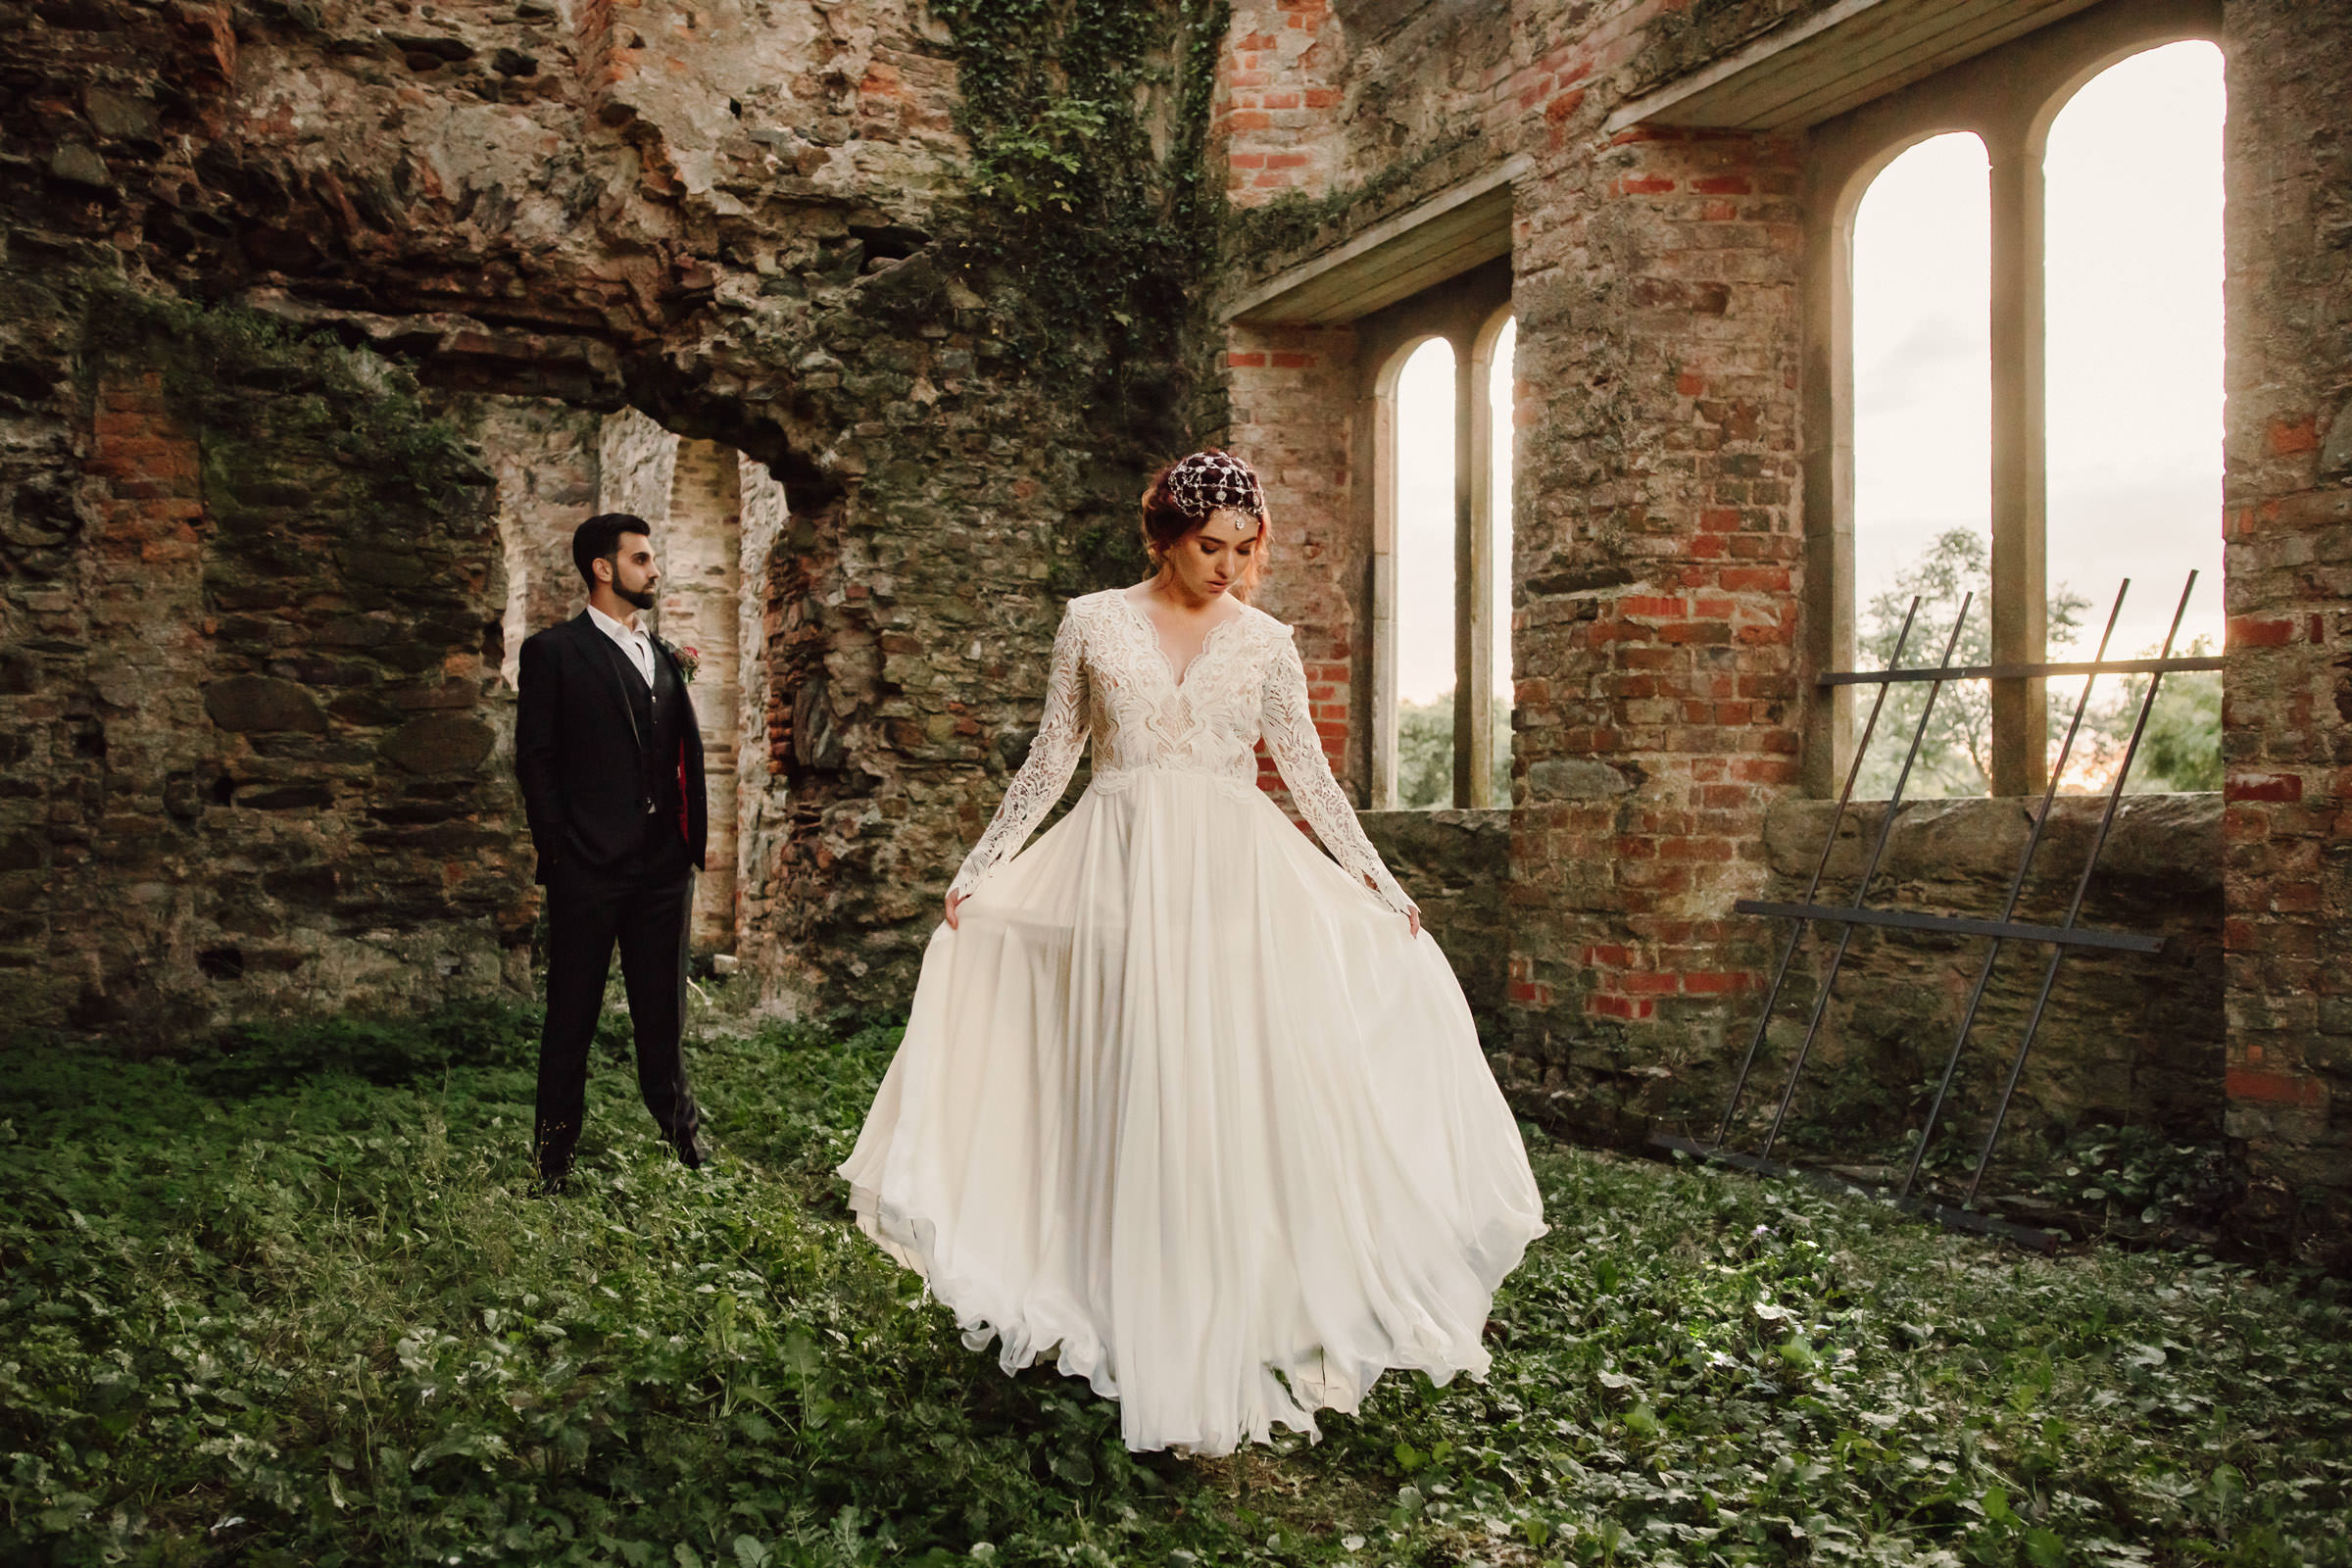 Bride and groom portrait amid building ruin in Ireland - photo by Lima Conlon Photography